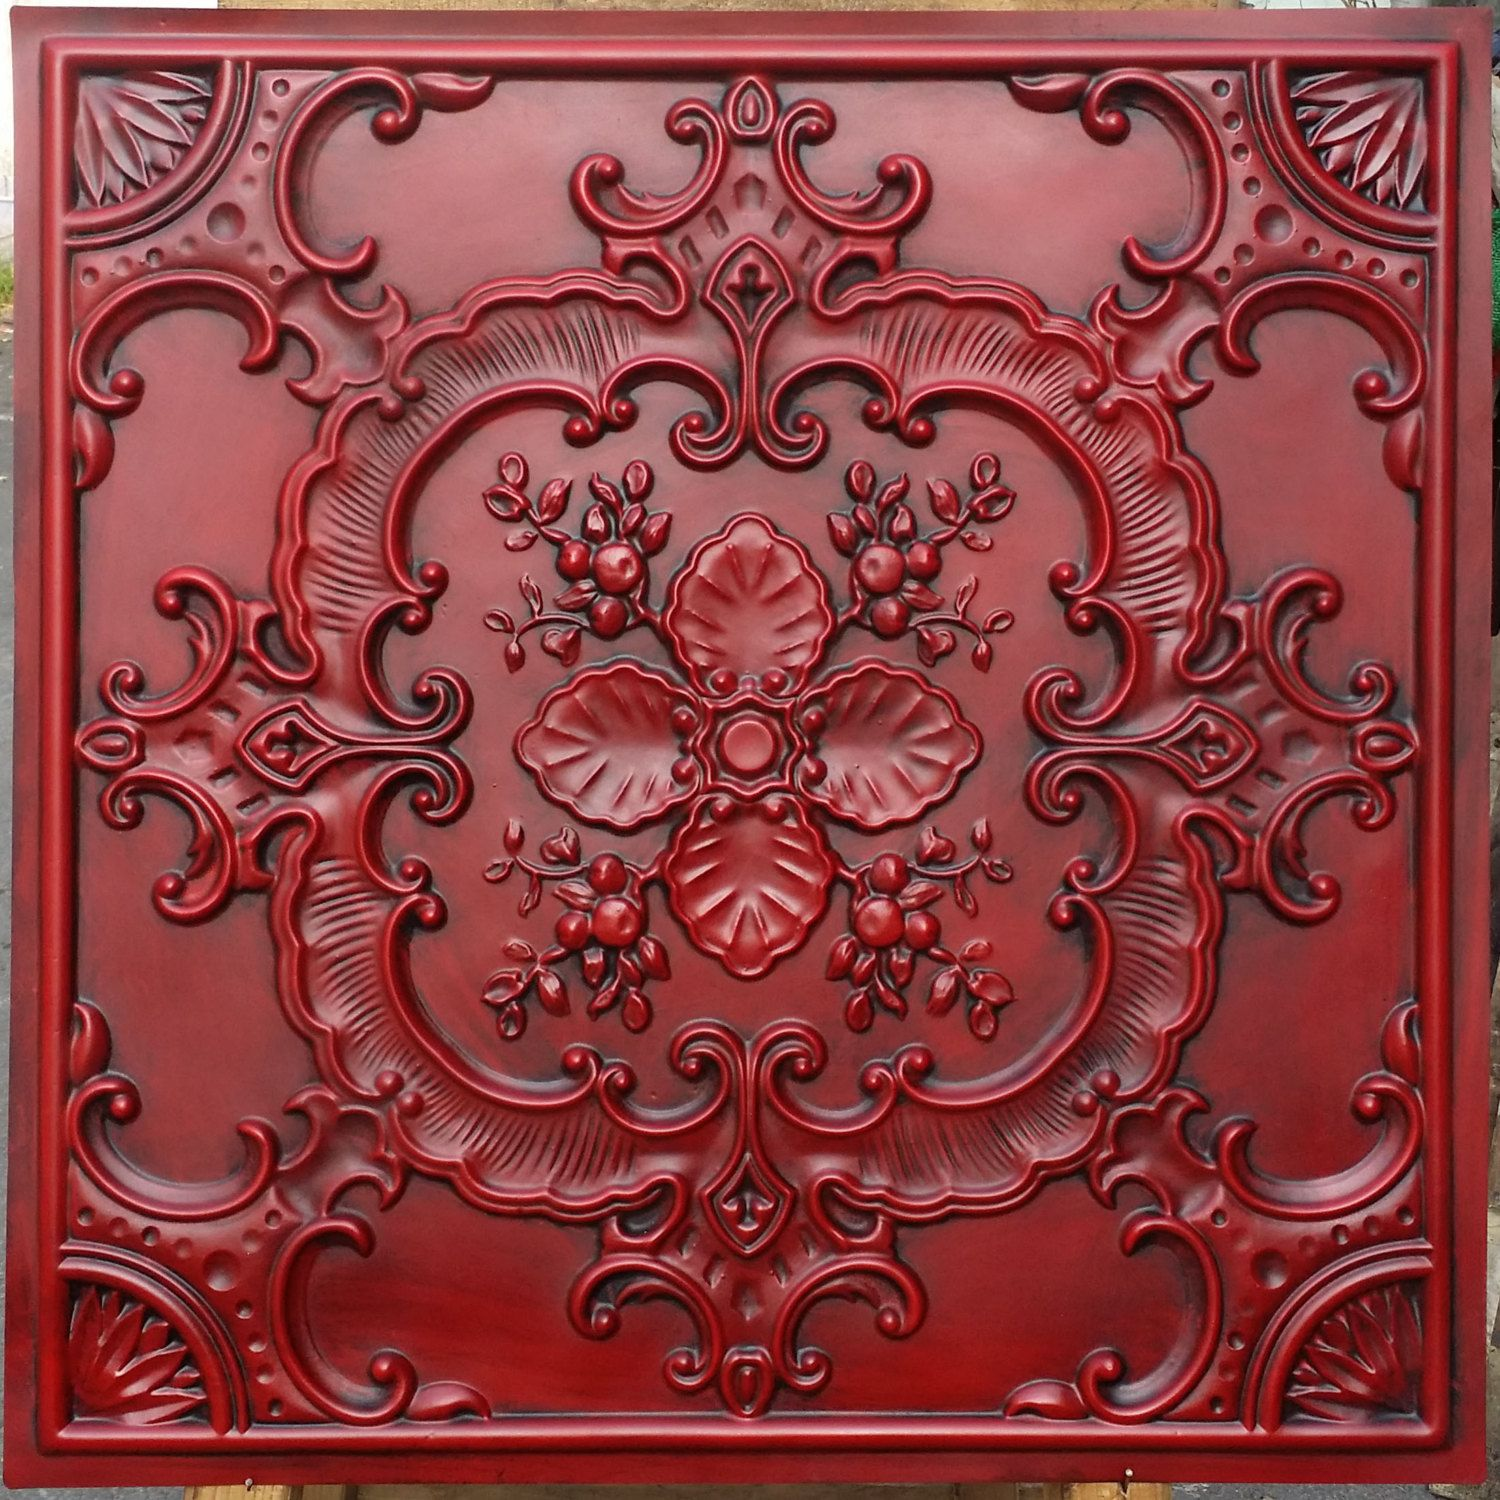 Pl19 faux tin finishes artistic style antique red ceiling tiles 3d pl19 faux tin finishes artistic style antique red ceiling tiles 3d embossed photography background panels boards dailygadgetfo Image collections